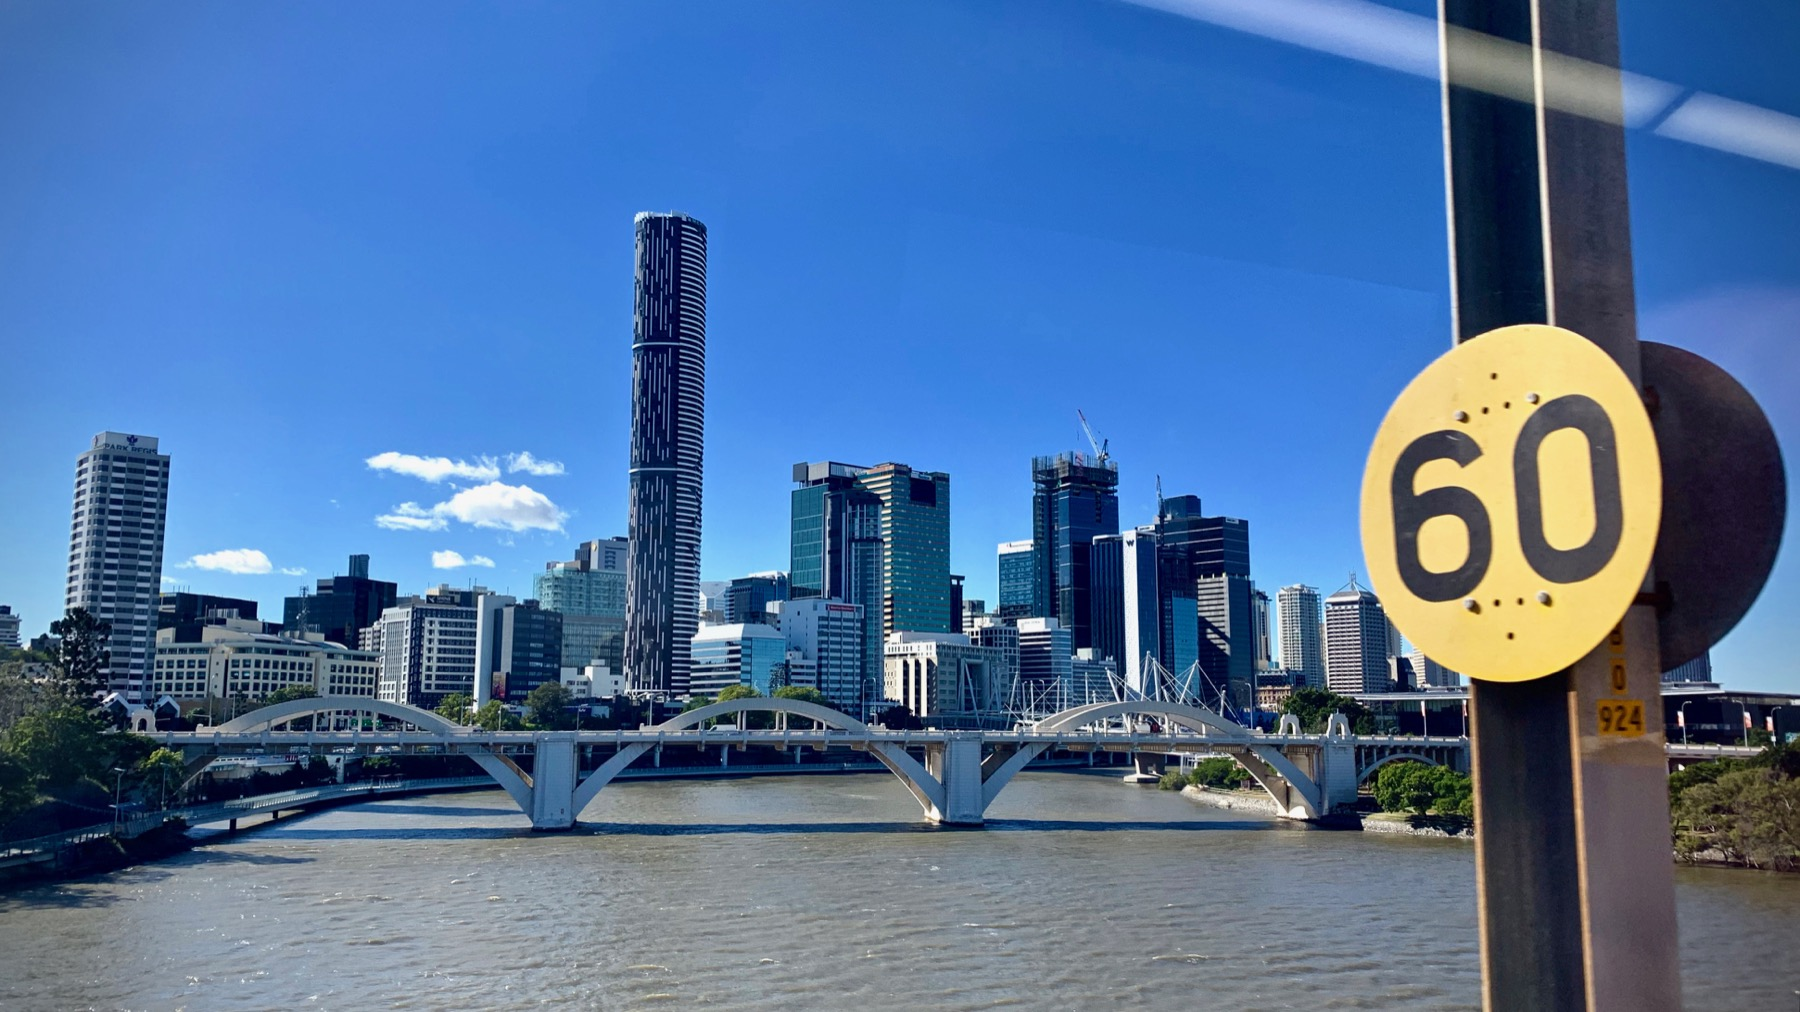 Crossing the Brisbane River